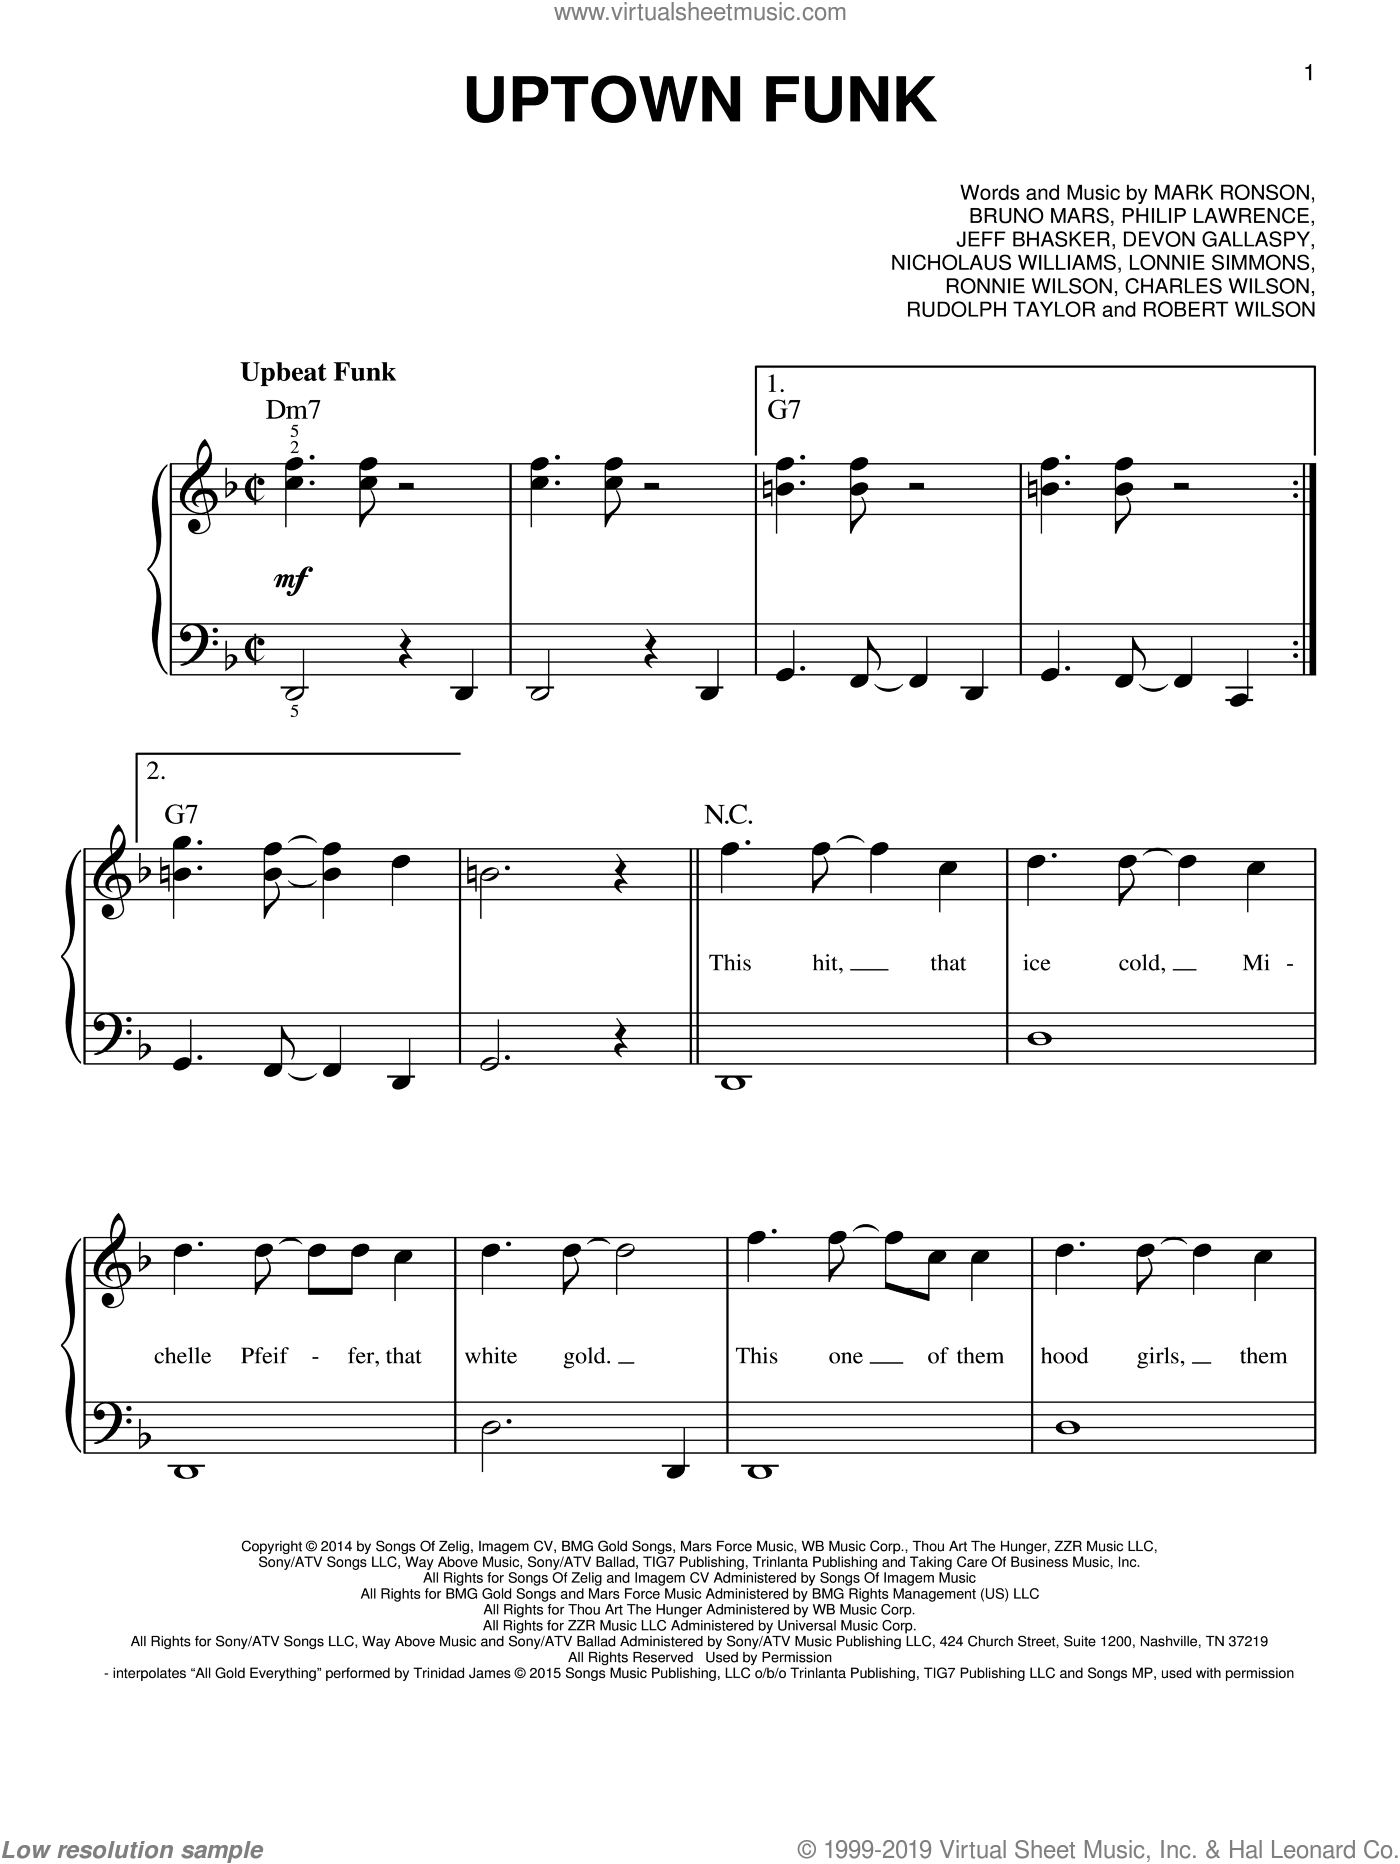 Uptown funk sheet music for piano solo by rudolph taylor